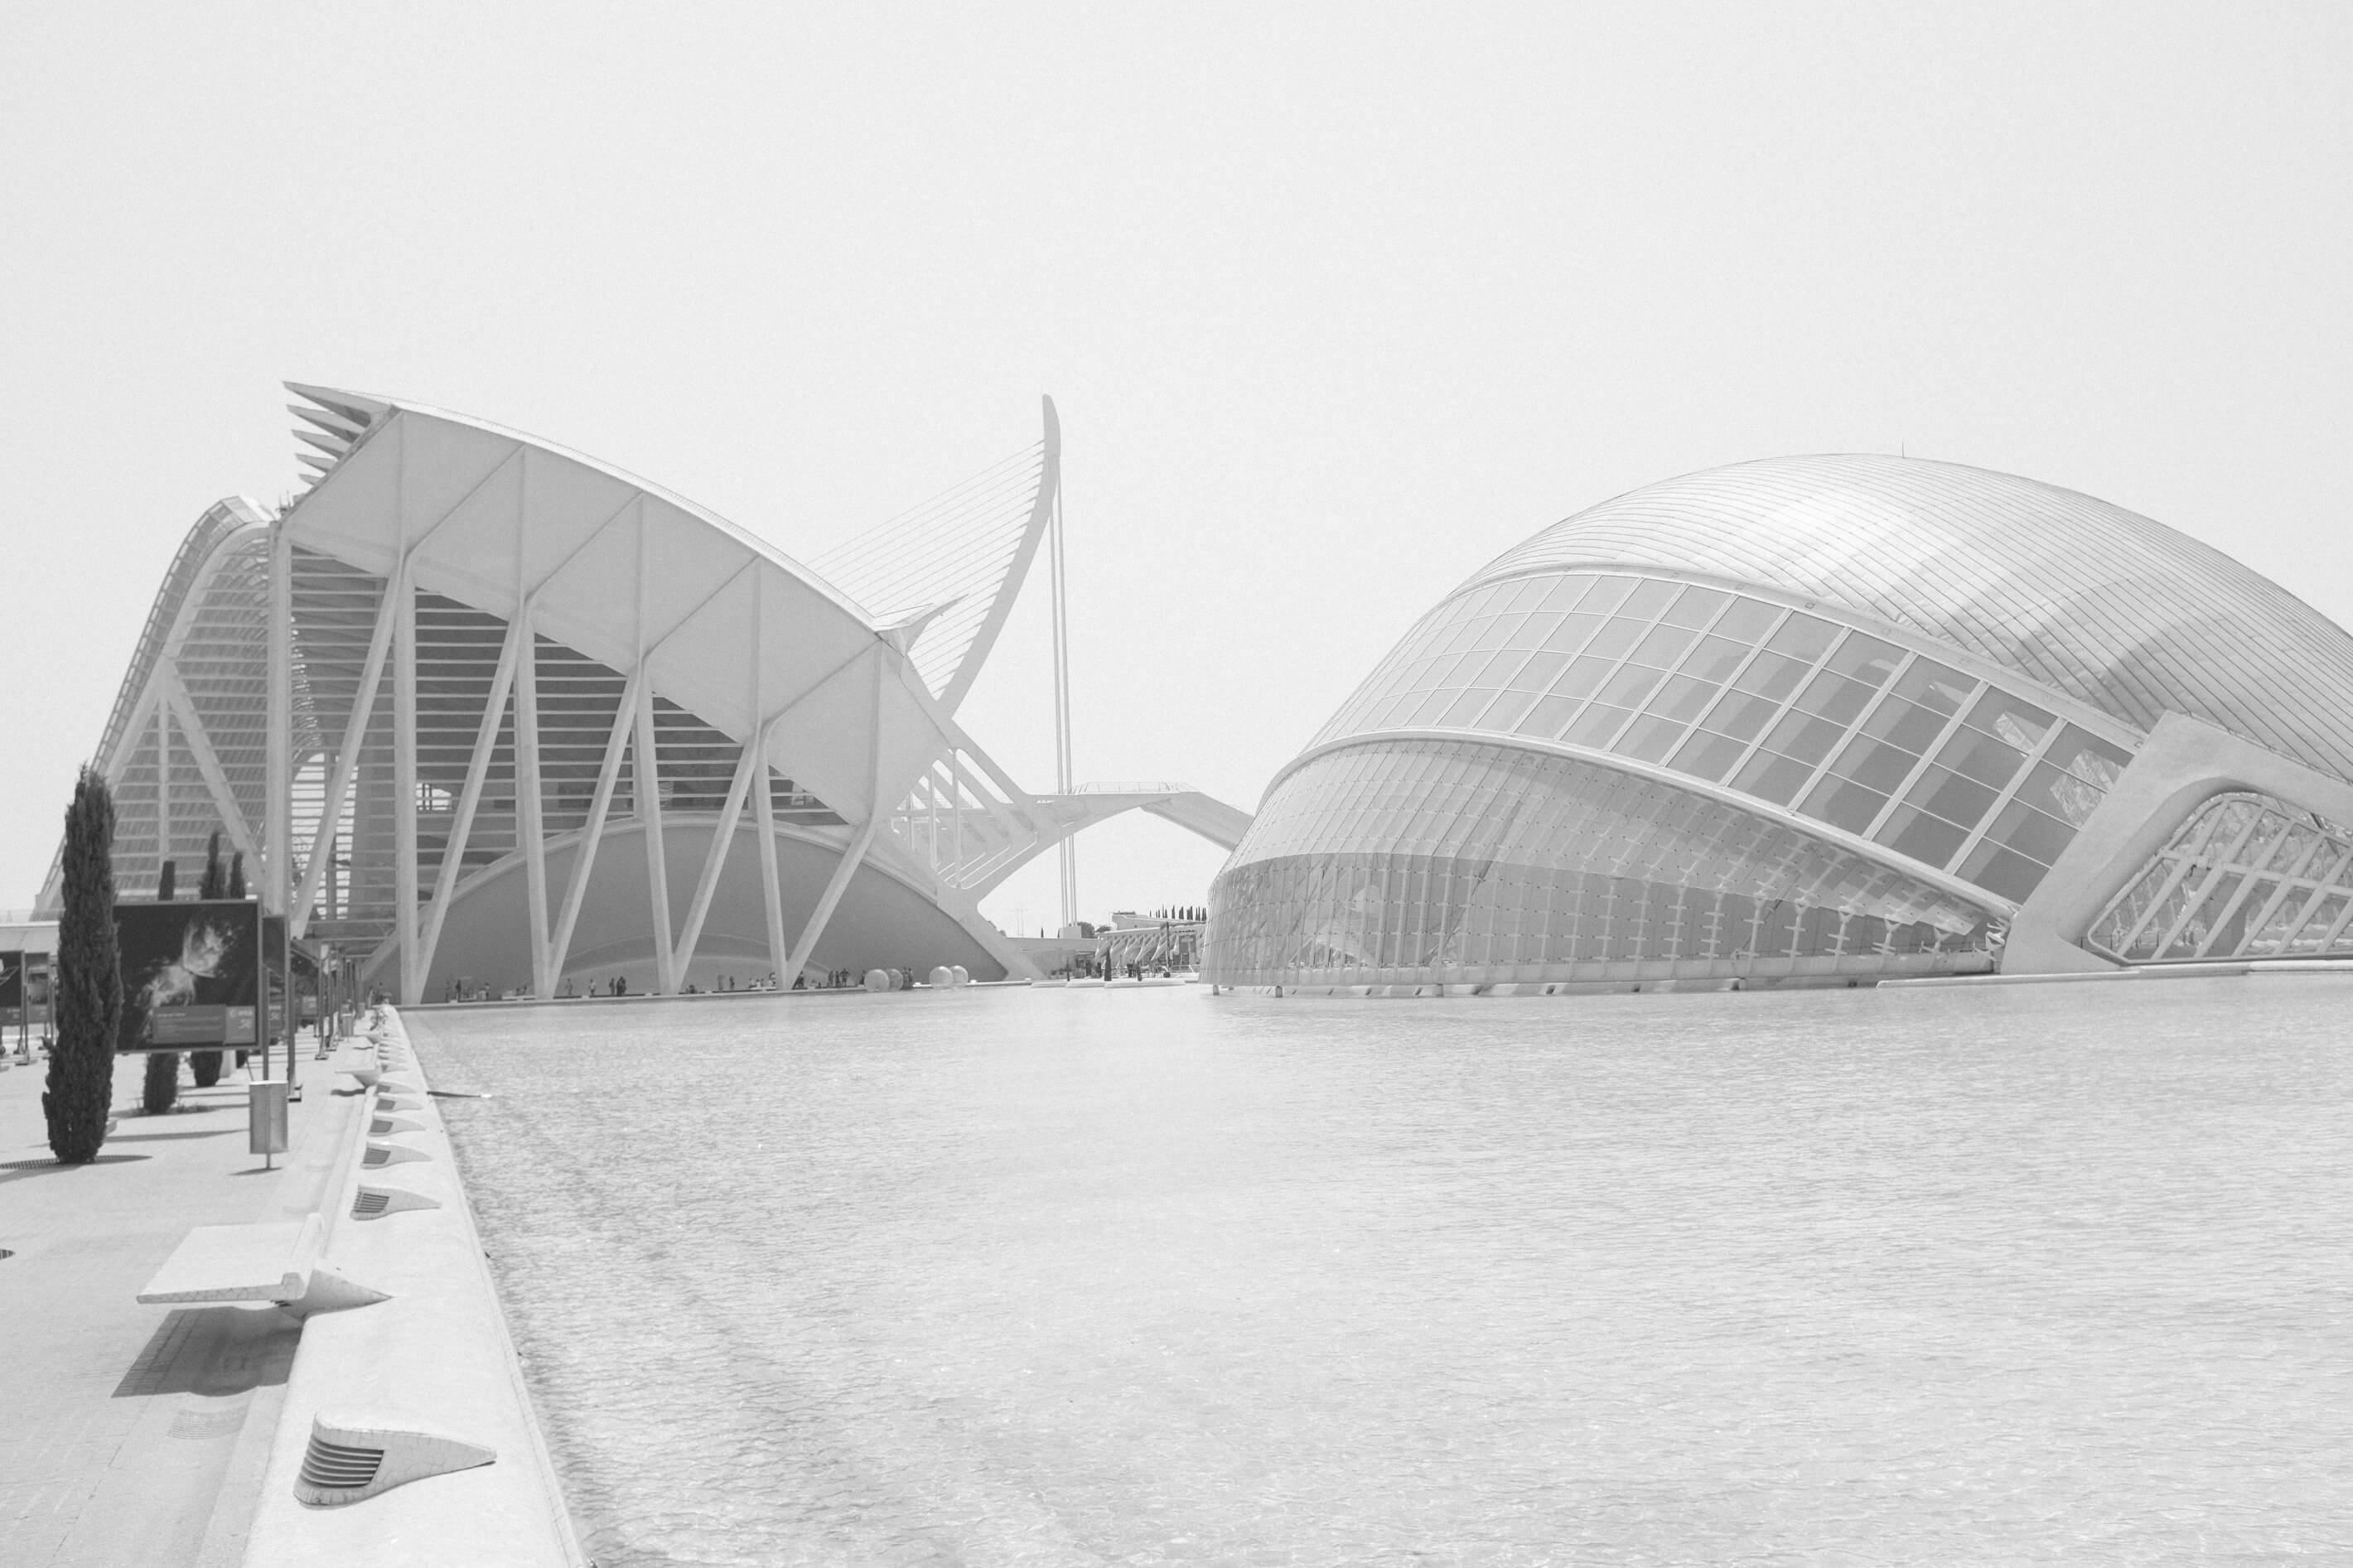 160828_valencia_whiteout_1330